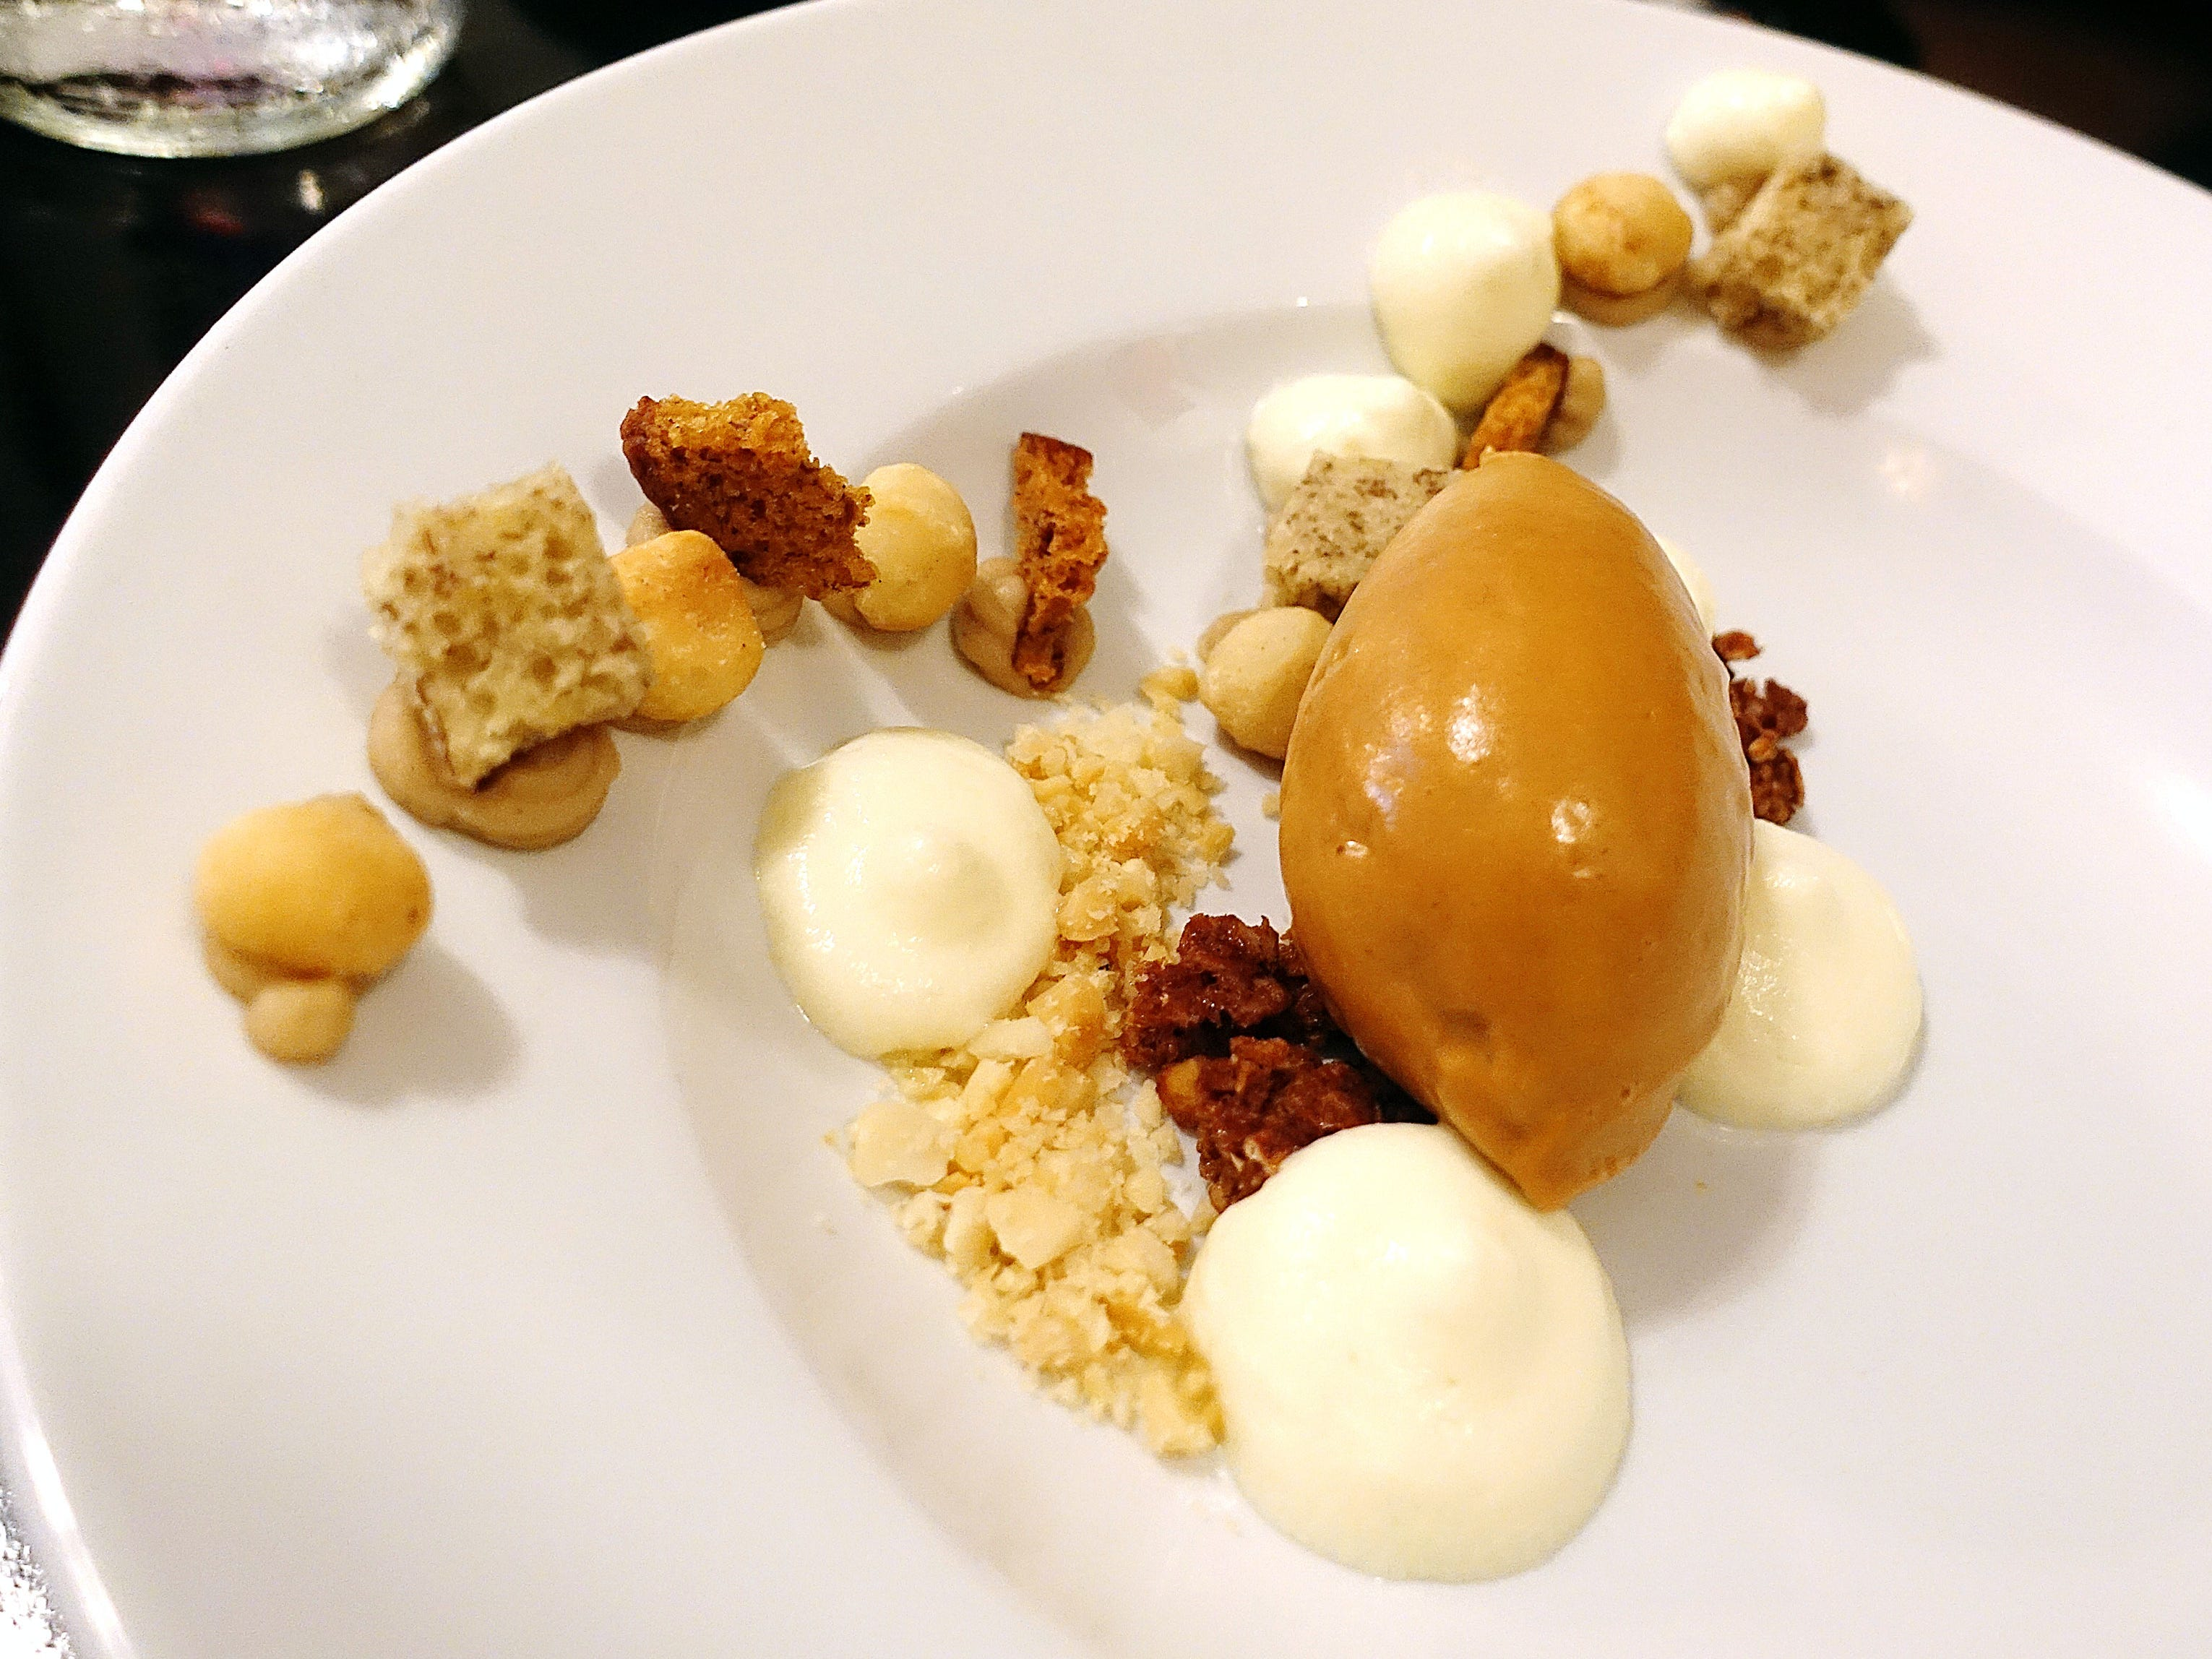 Caramelized white chocolate mousse with macadamia nut and banana bread at Confluence in Carefree.